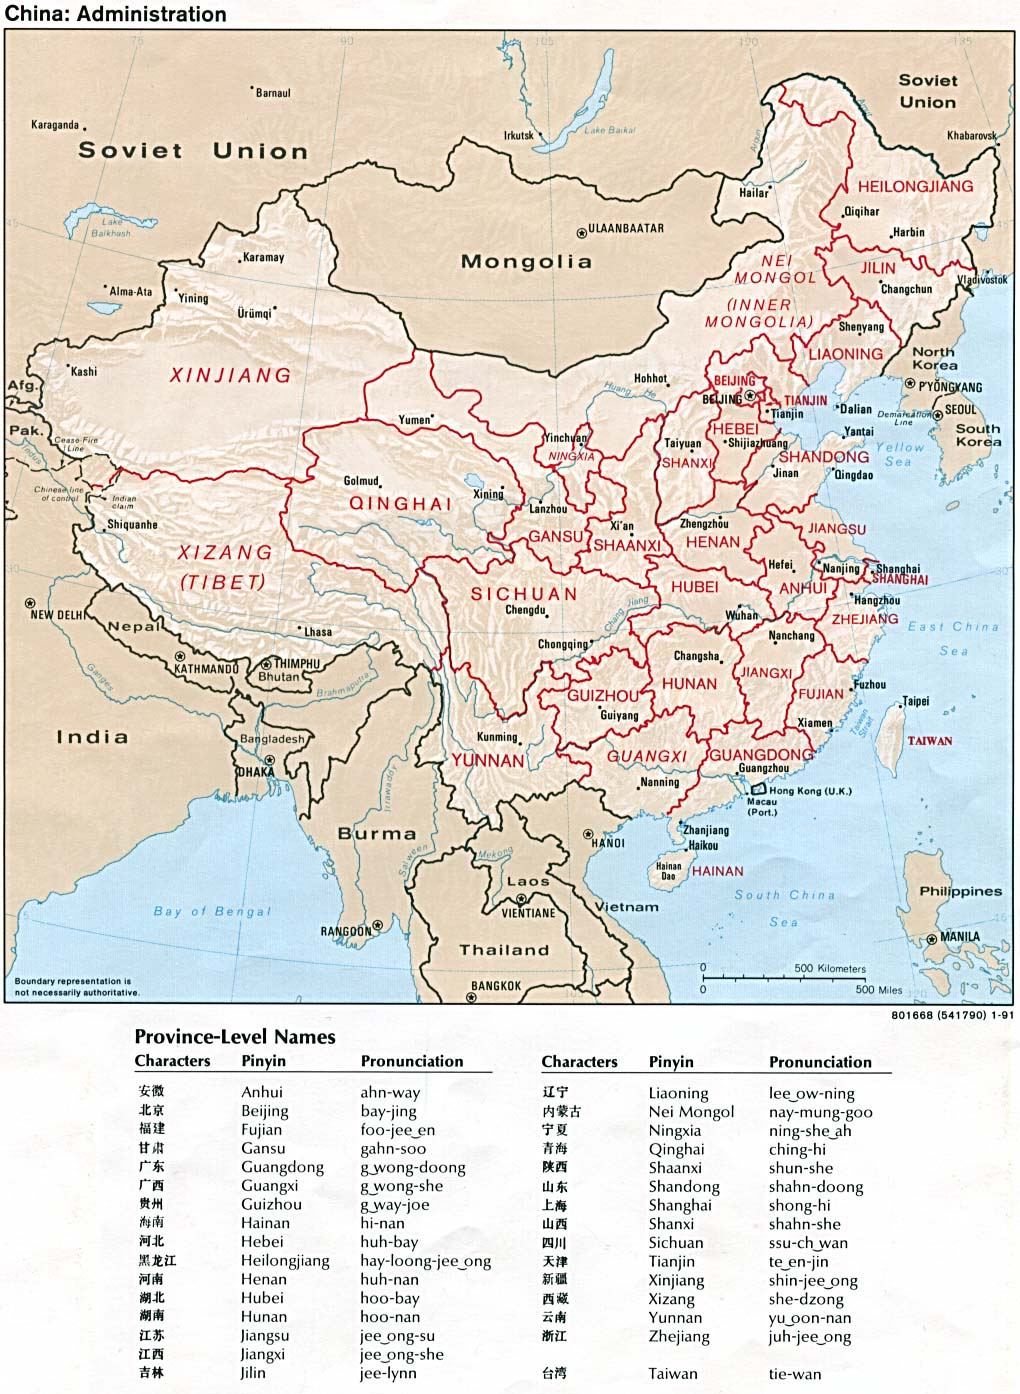 China administraion Map 1991.jpg